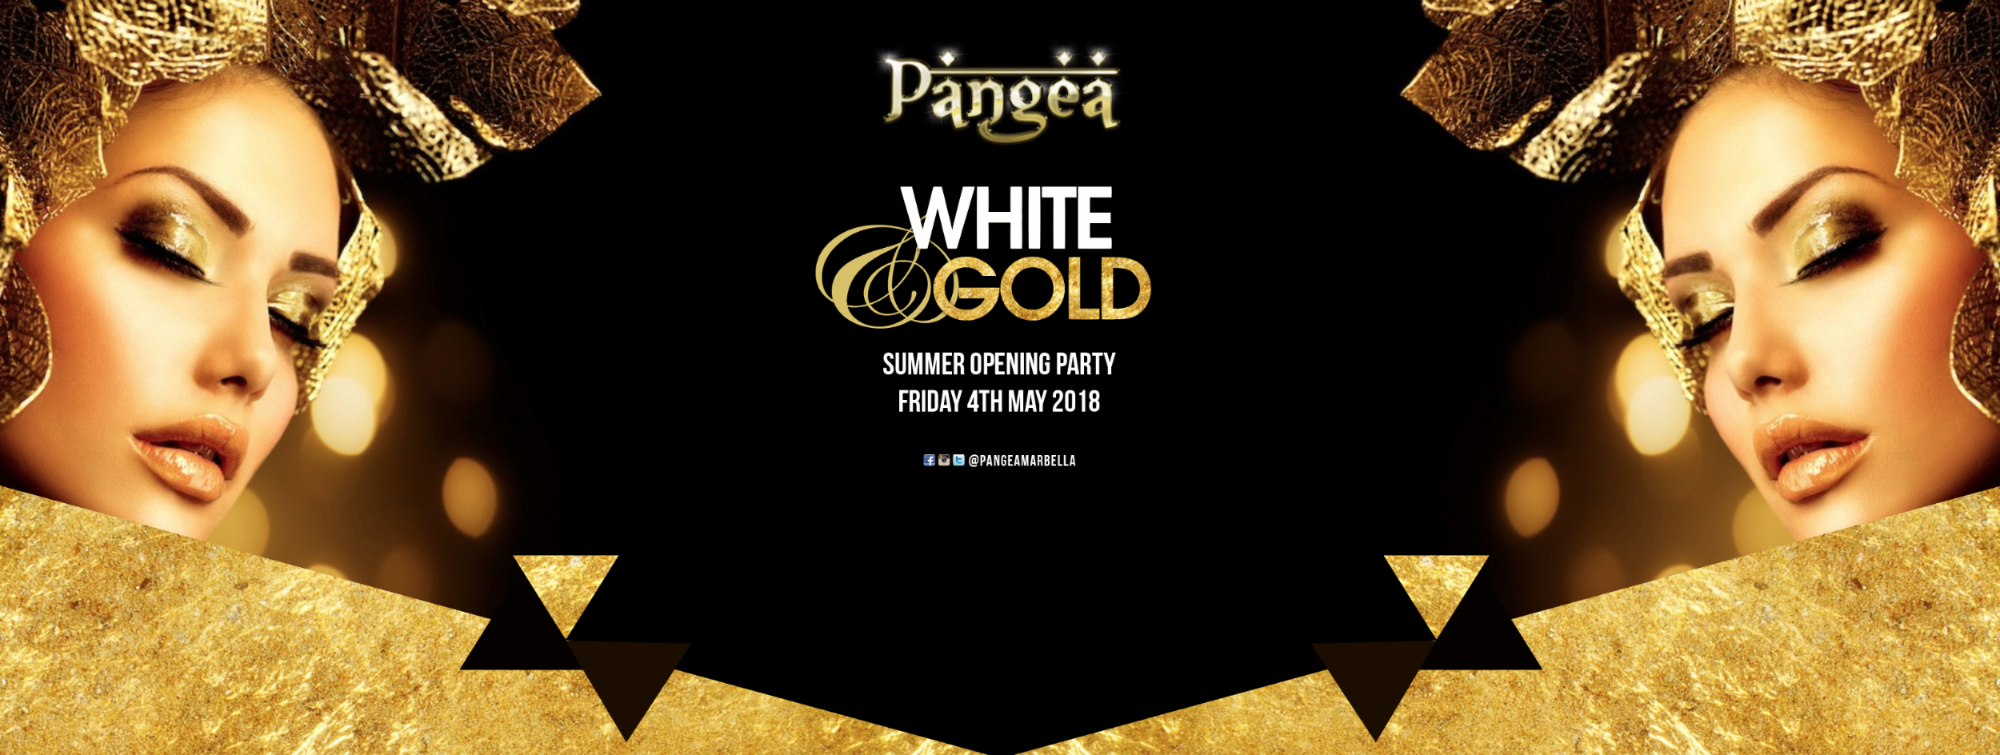 Pangea White & Gold Summer Opening Party